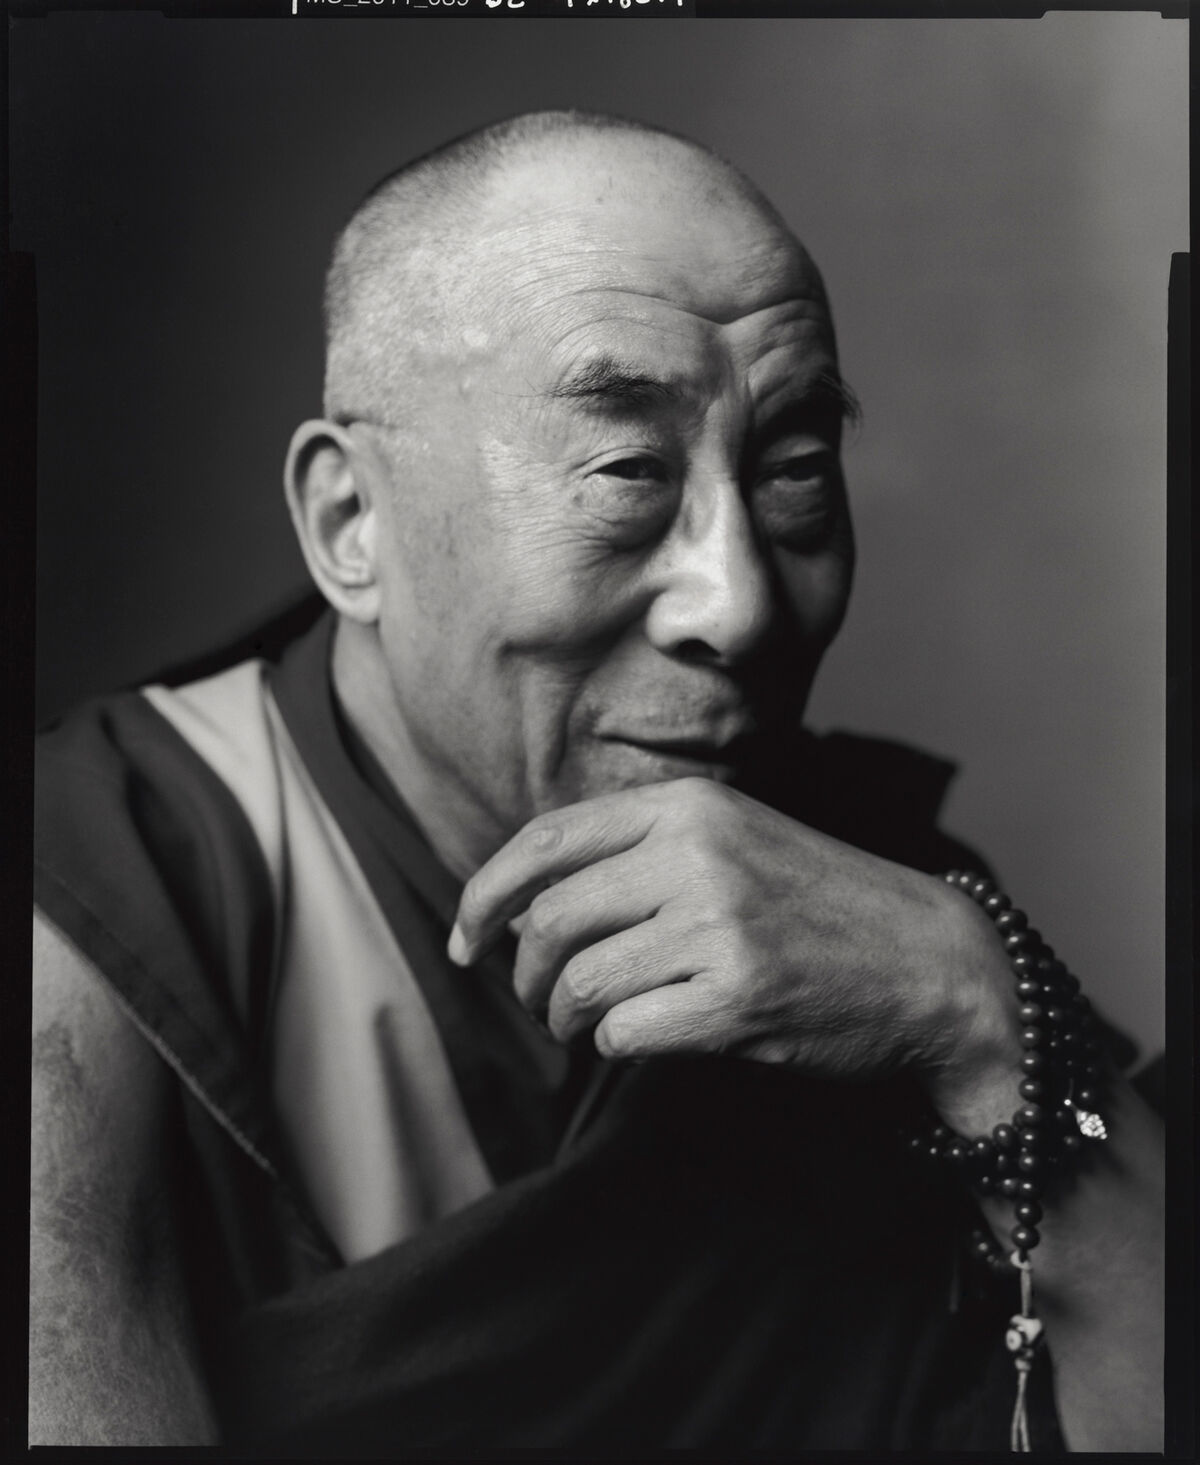 Mark Seliger, Dalai Lama, Washington D.C., 2011. Courtesy of the artist.